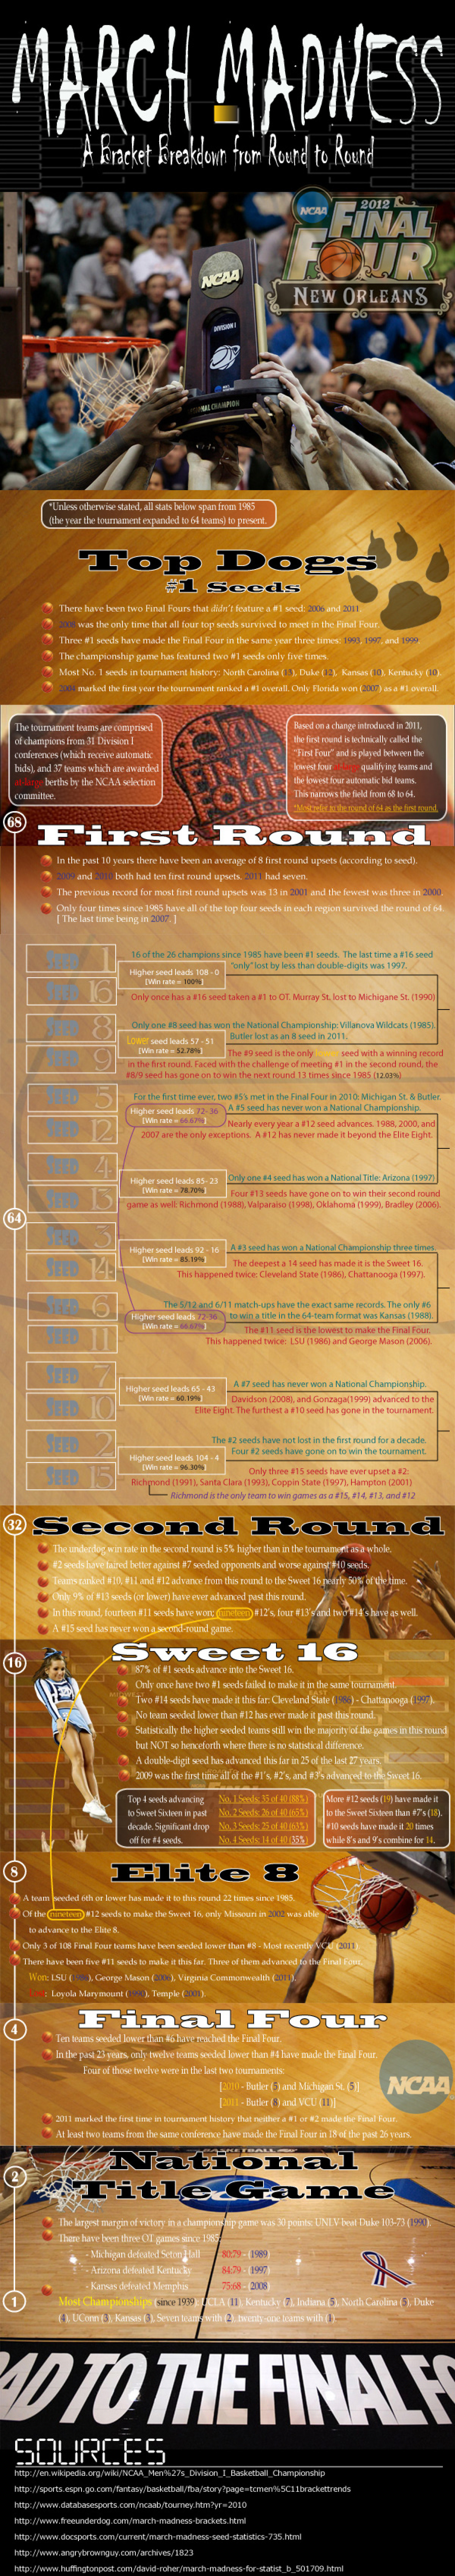 March Madness: A Bracket Breakdown From Round to Round Infographic